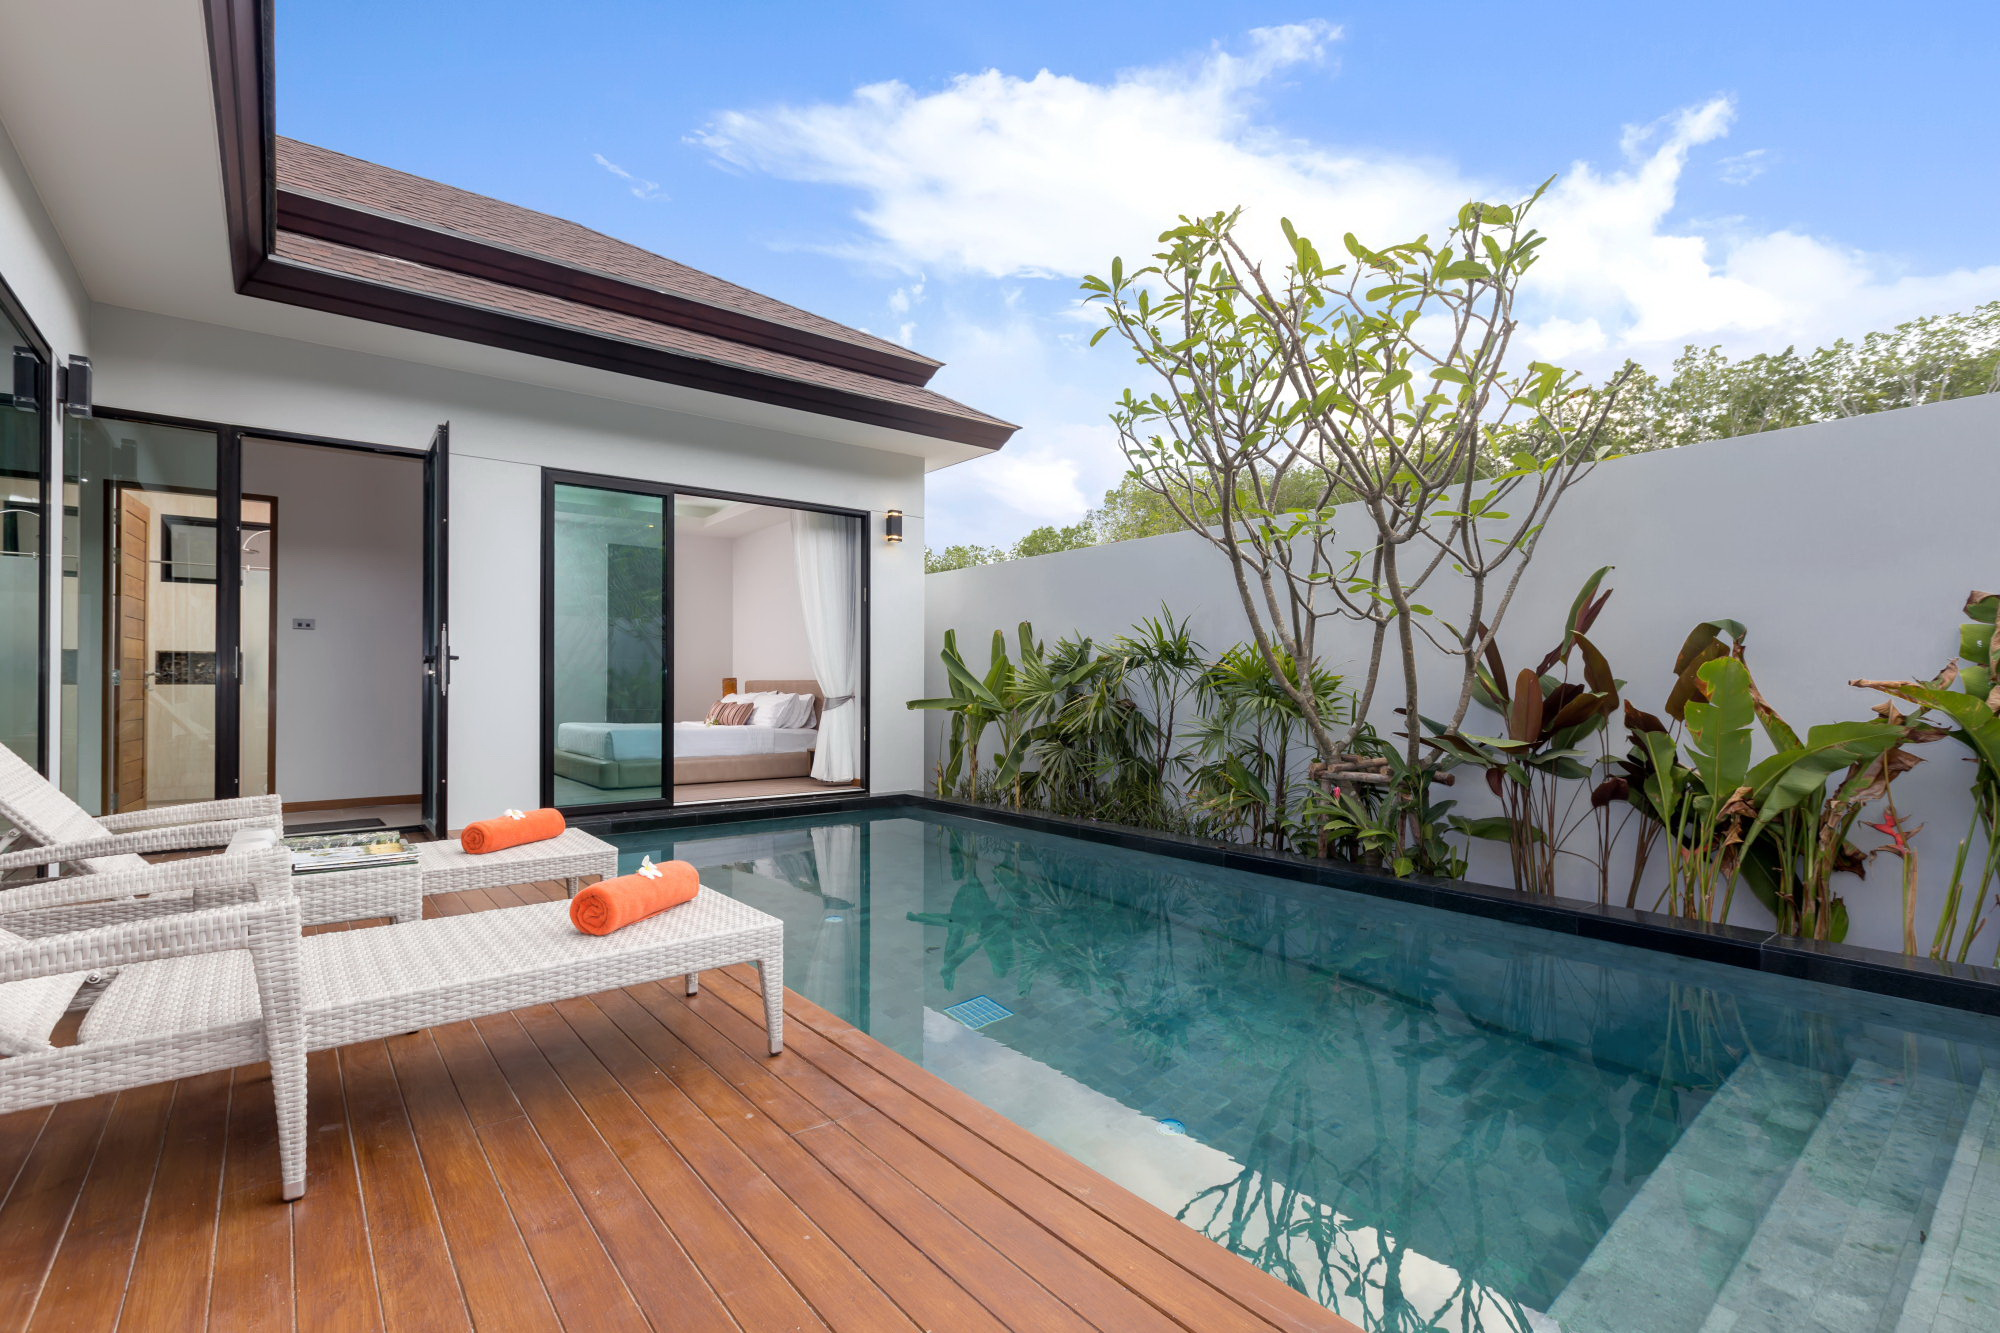 Nyg520 Stylish New Built 2 Bedroom Pool Villa Nai Yang